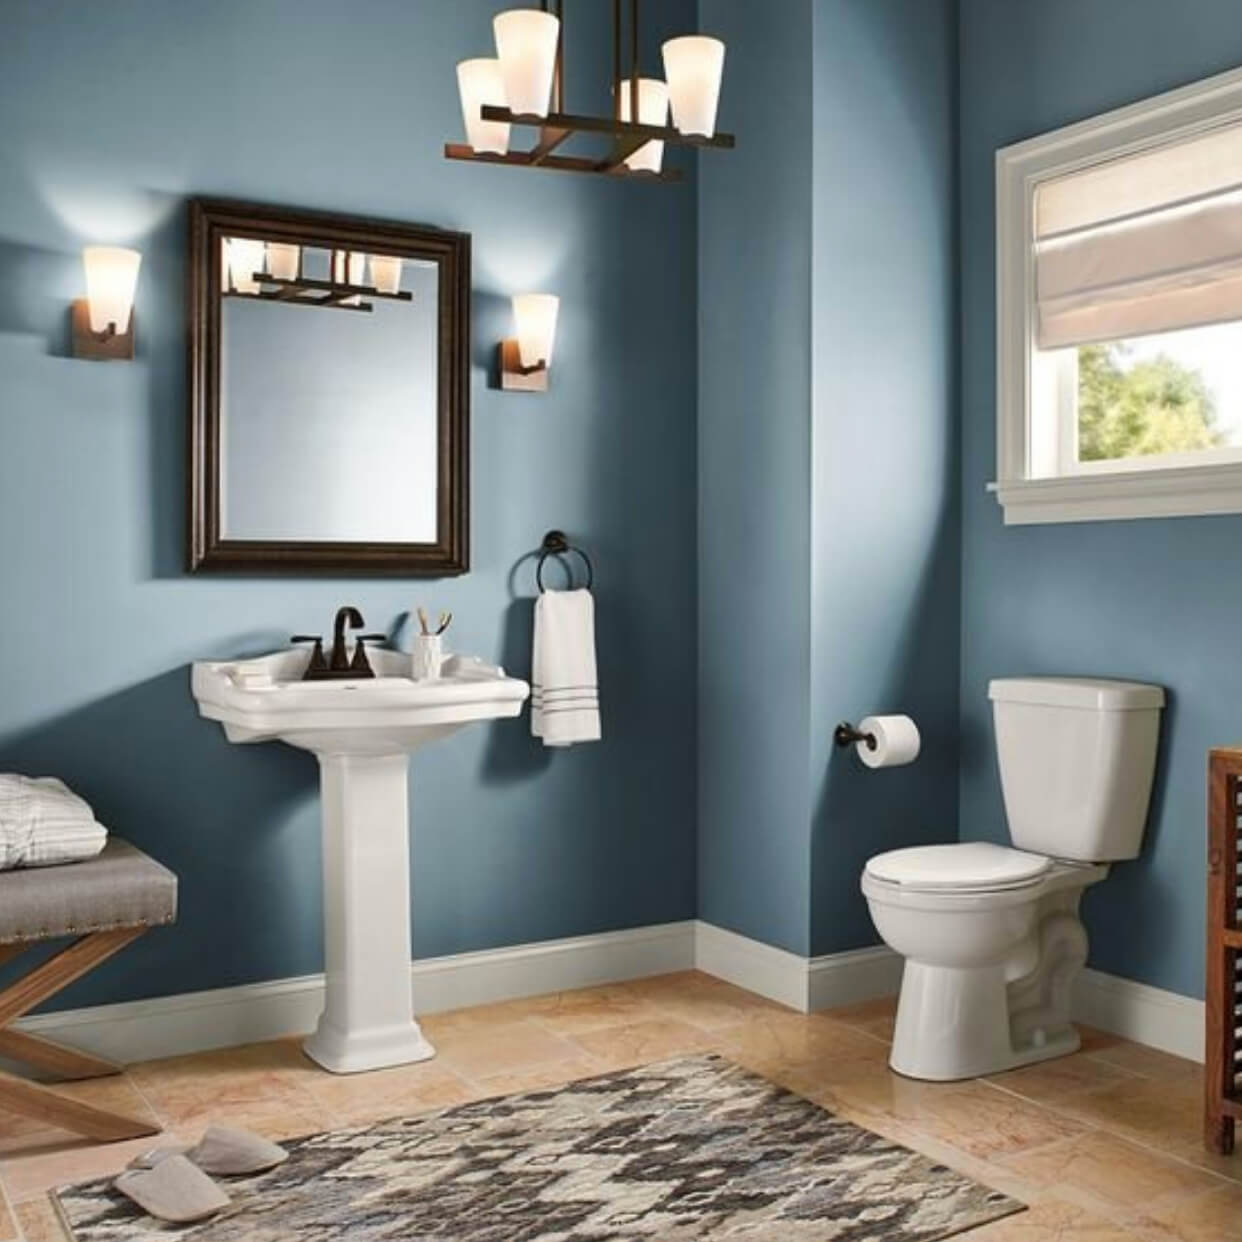 Best Bathroom Colors For 2019 Based On Popularity: Decorating Ideas For Behr Blueprint: 2019 Color Of The Year